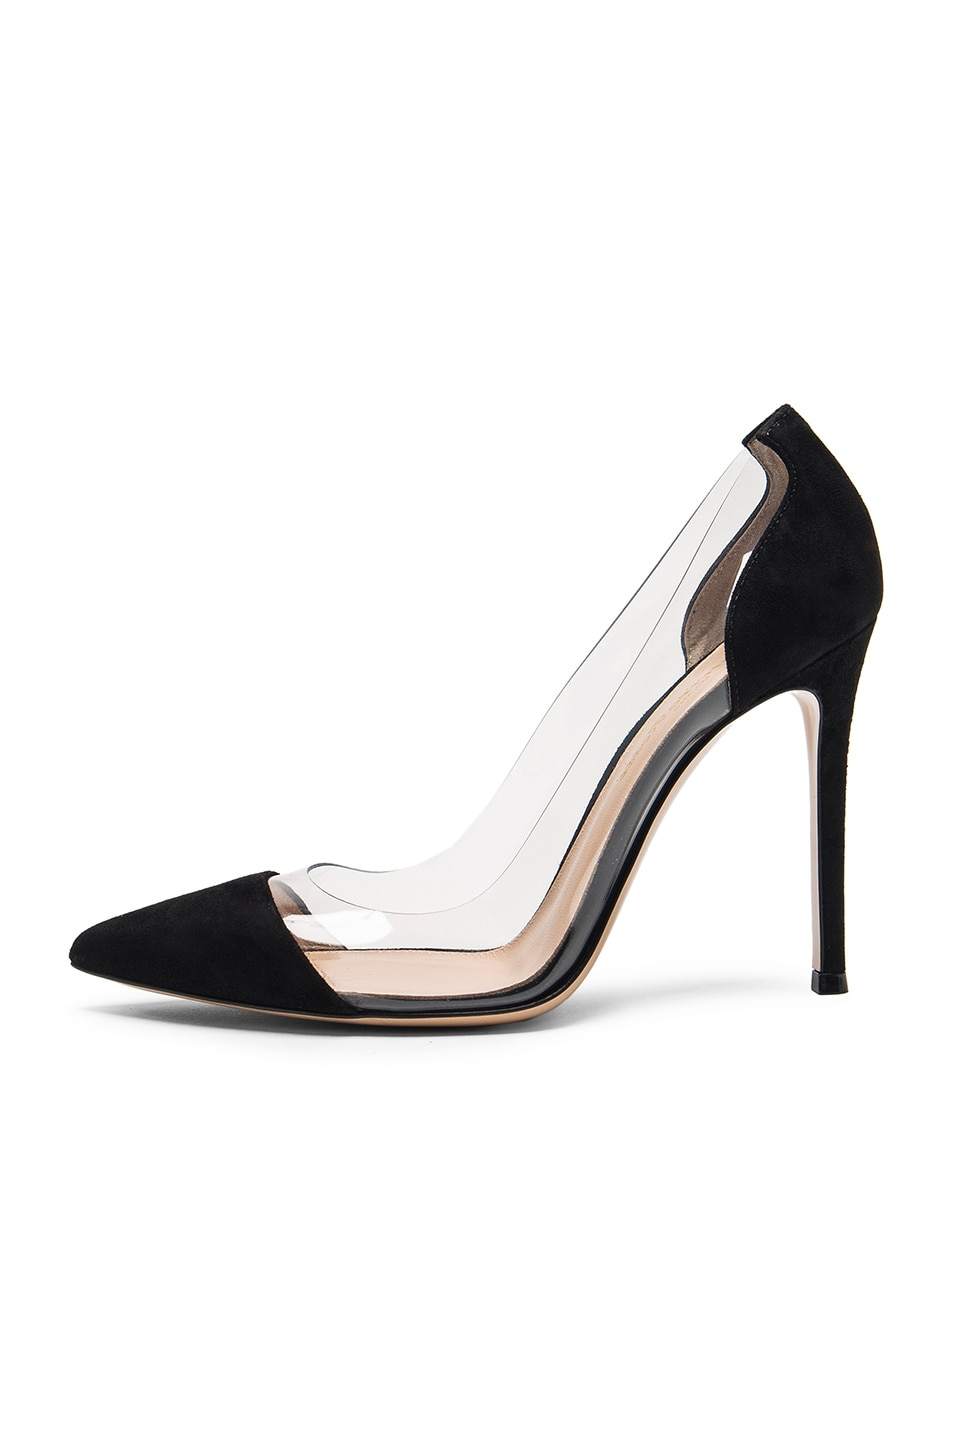 Image 5 of Gianvito Rossi Suede Plexi Pumps in Black